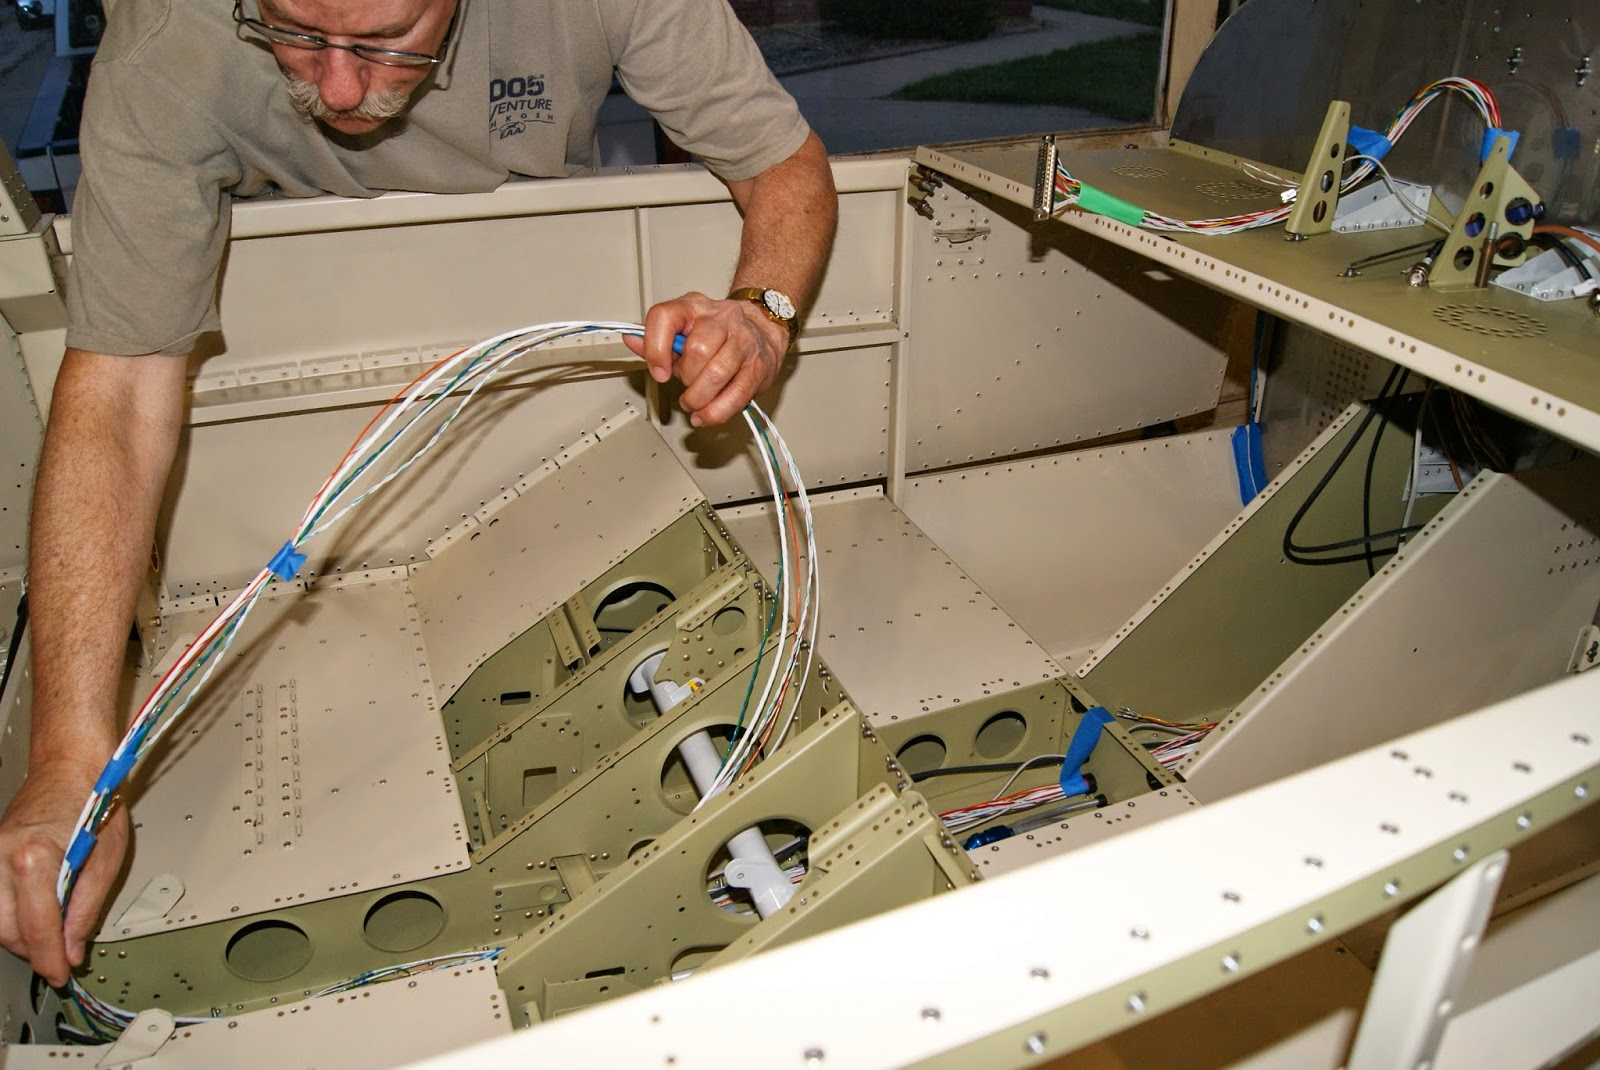 Dog Aviation Johns Rv 12 Blog Installation Of Wh 00046 Wire Harness Grommet The Cable Forward F 1203a Bulkhead Is In Final Position Working Further Aft Slowly But Surely